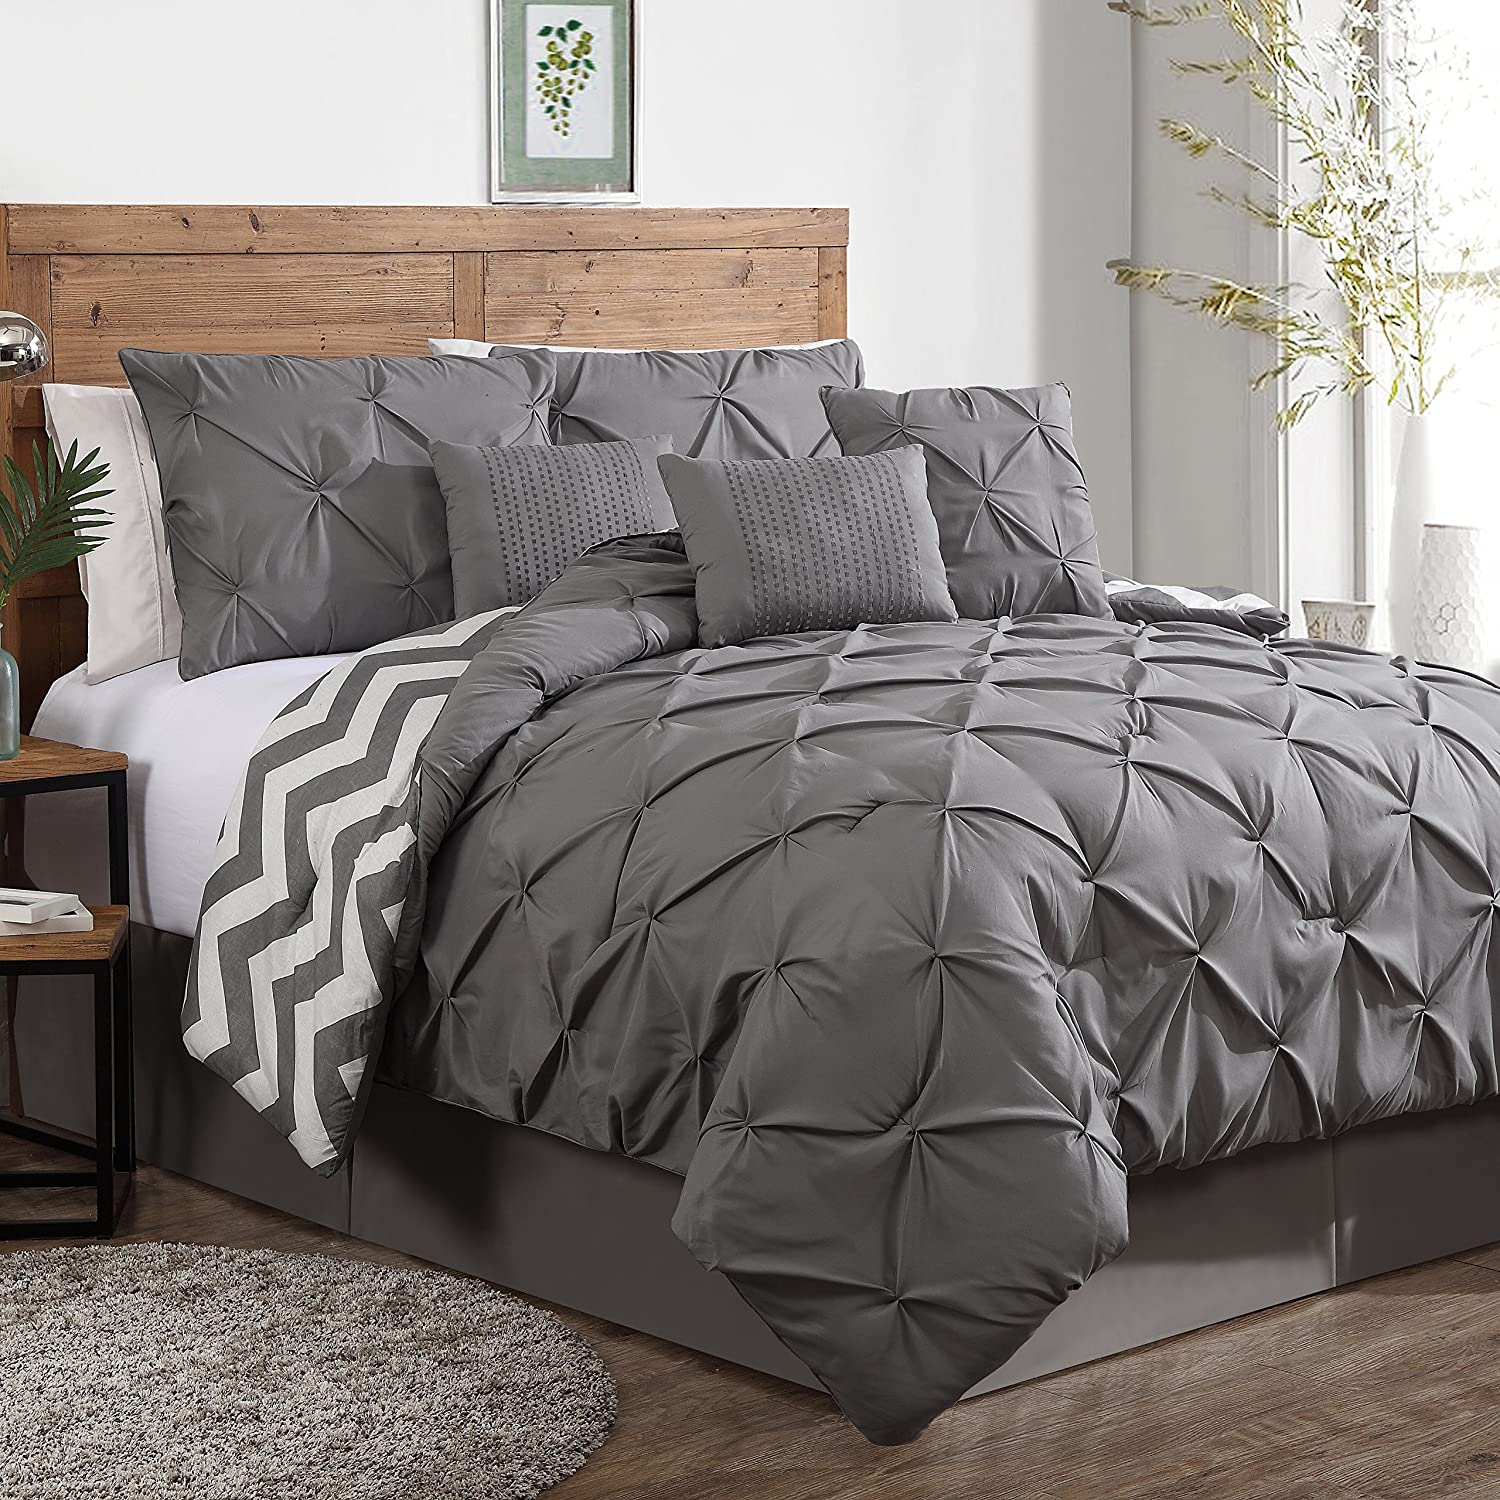 comforter soft queen and king light sale black gray sets navy size twin discount set white grey full blue bed bedding